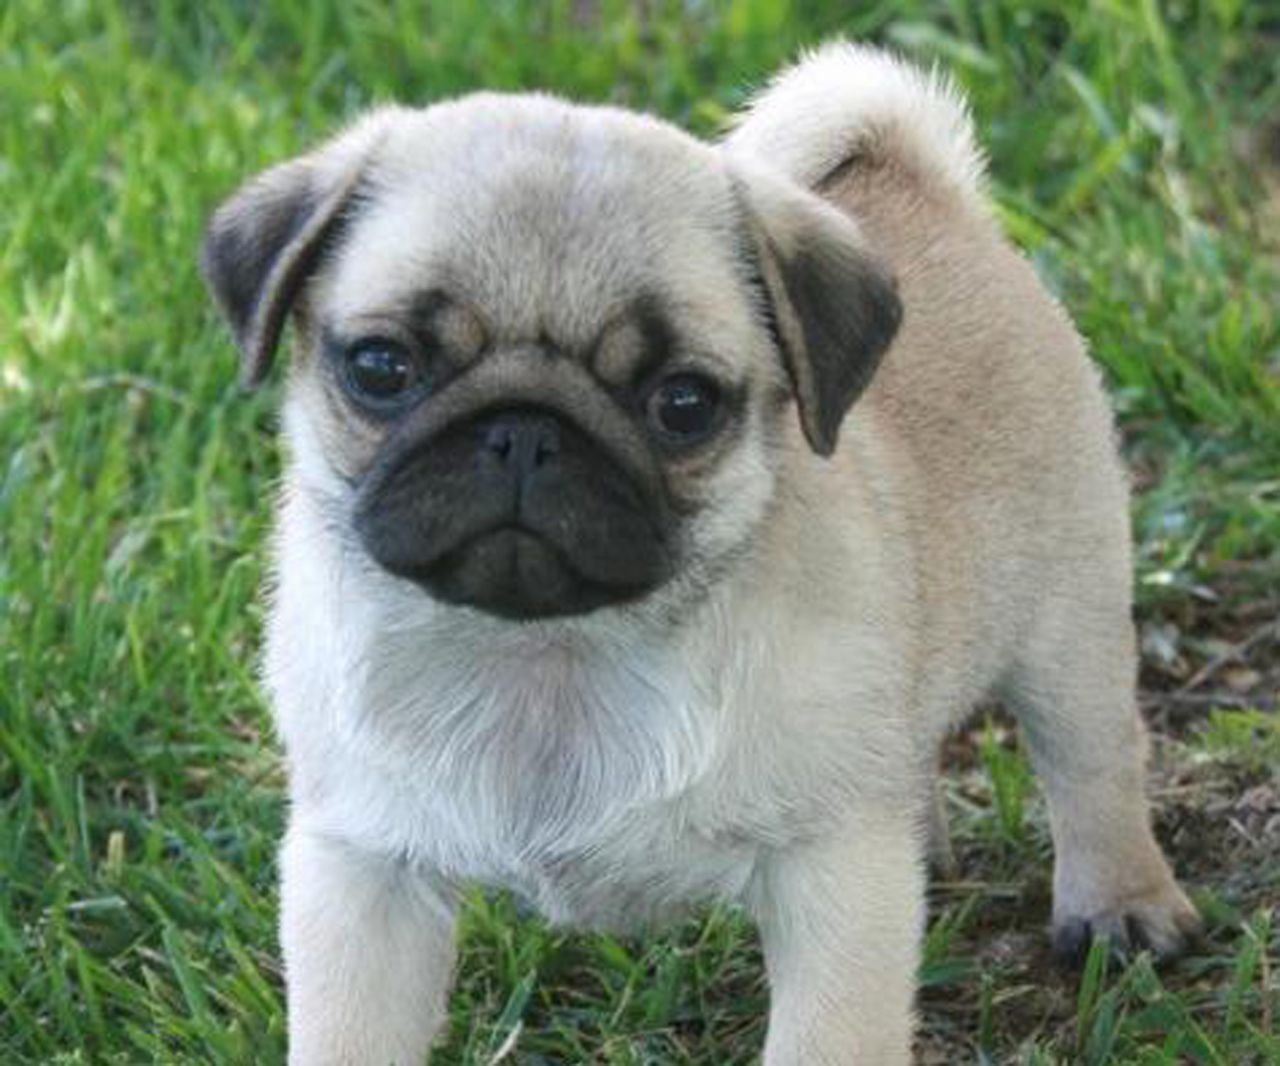 pug image for sale Desktop Backgrounds for HD Wallpaper wall 1280x1066